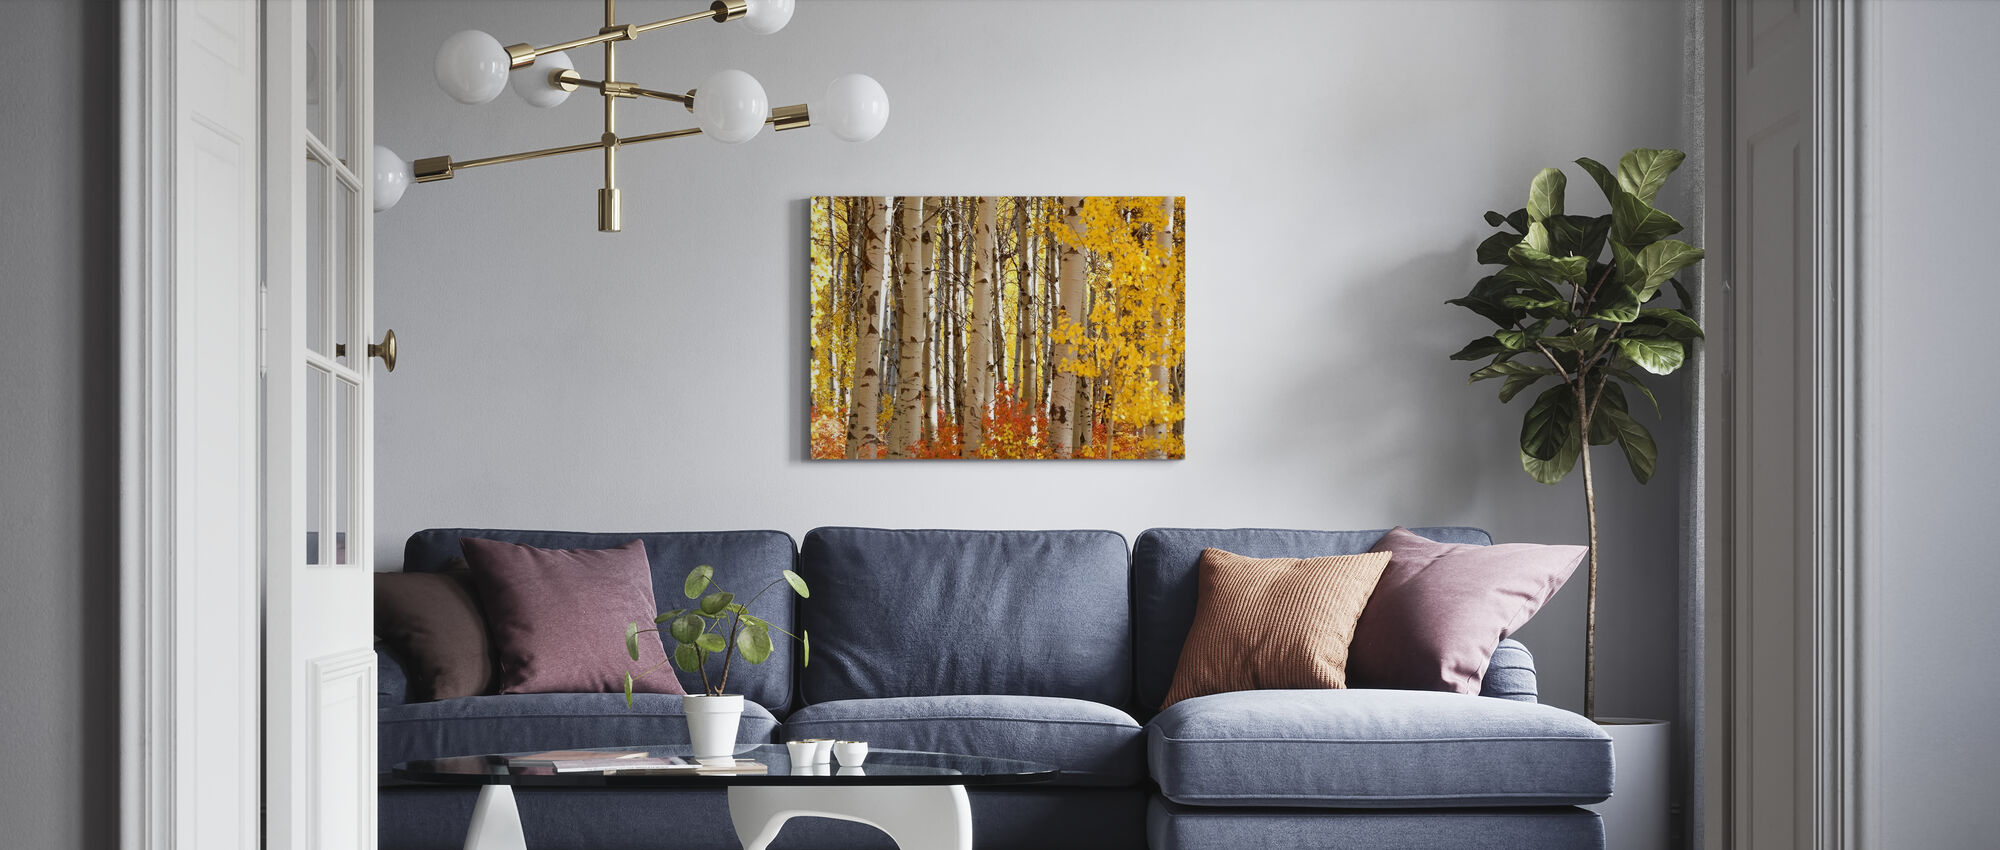 Cascade Loop - Canvas print - Living Room